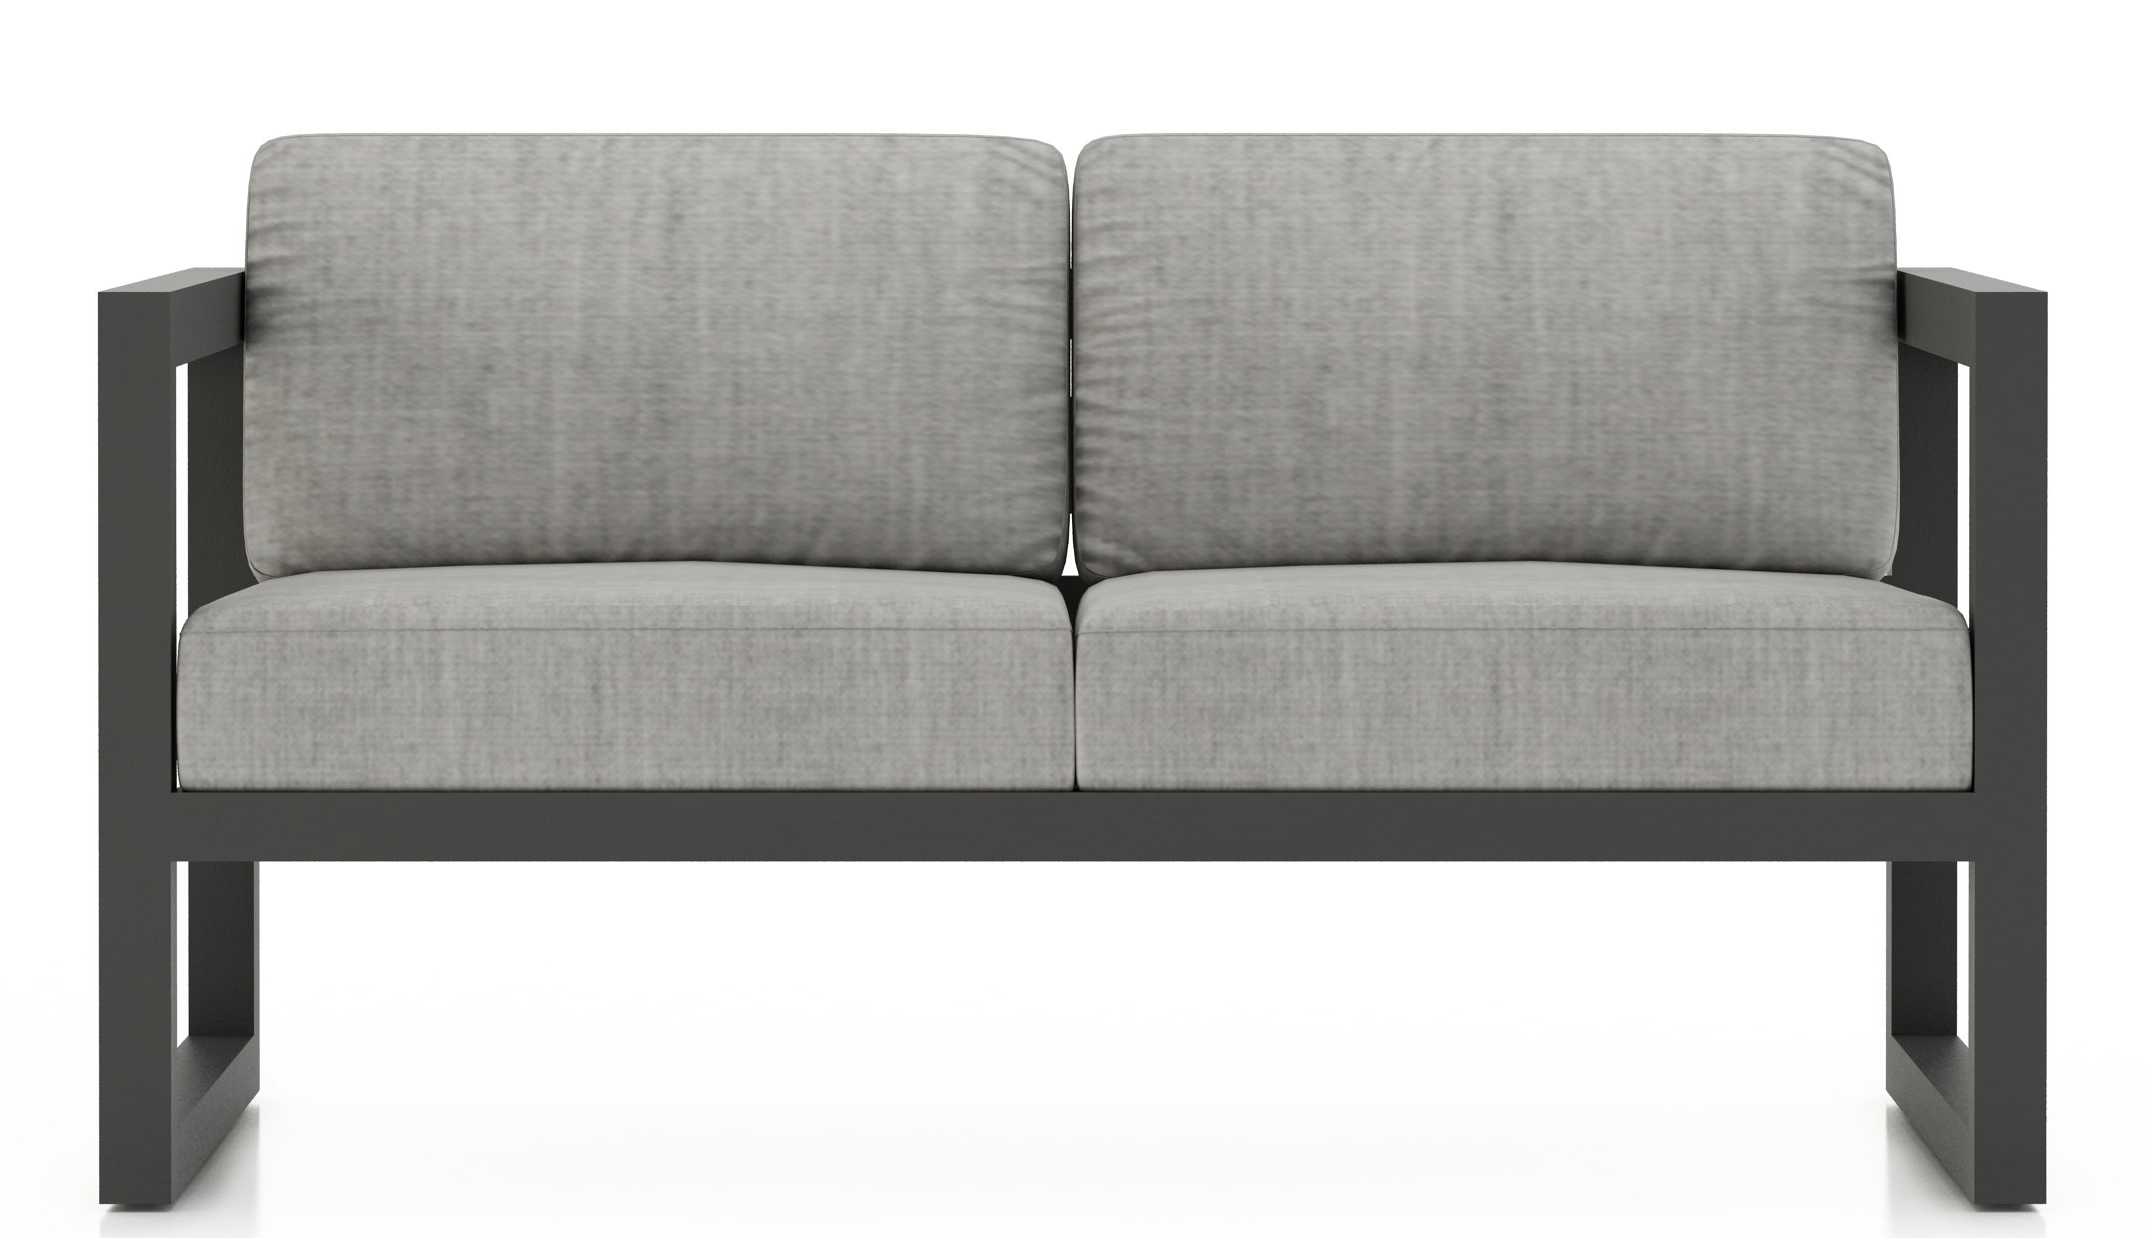 Well Known Bristol Loveseats With Cushions Intended For Remi Loveseat With Sunbrella Cushions (View 8 of 20)